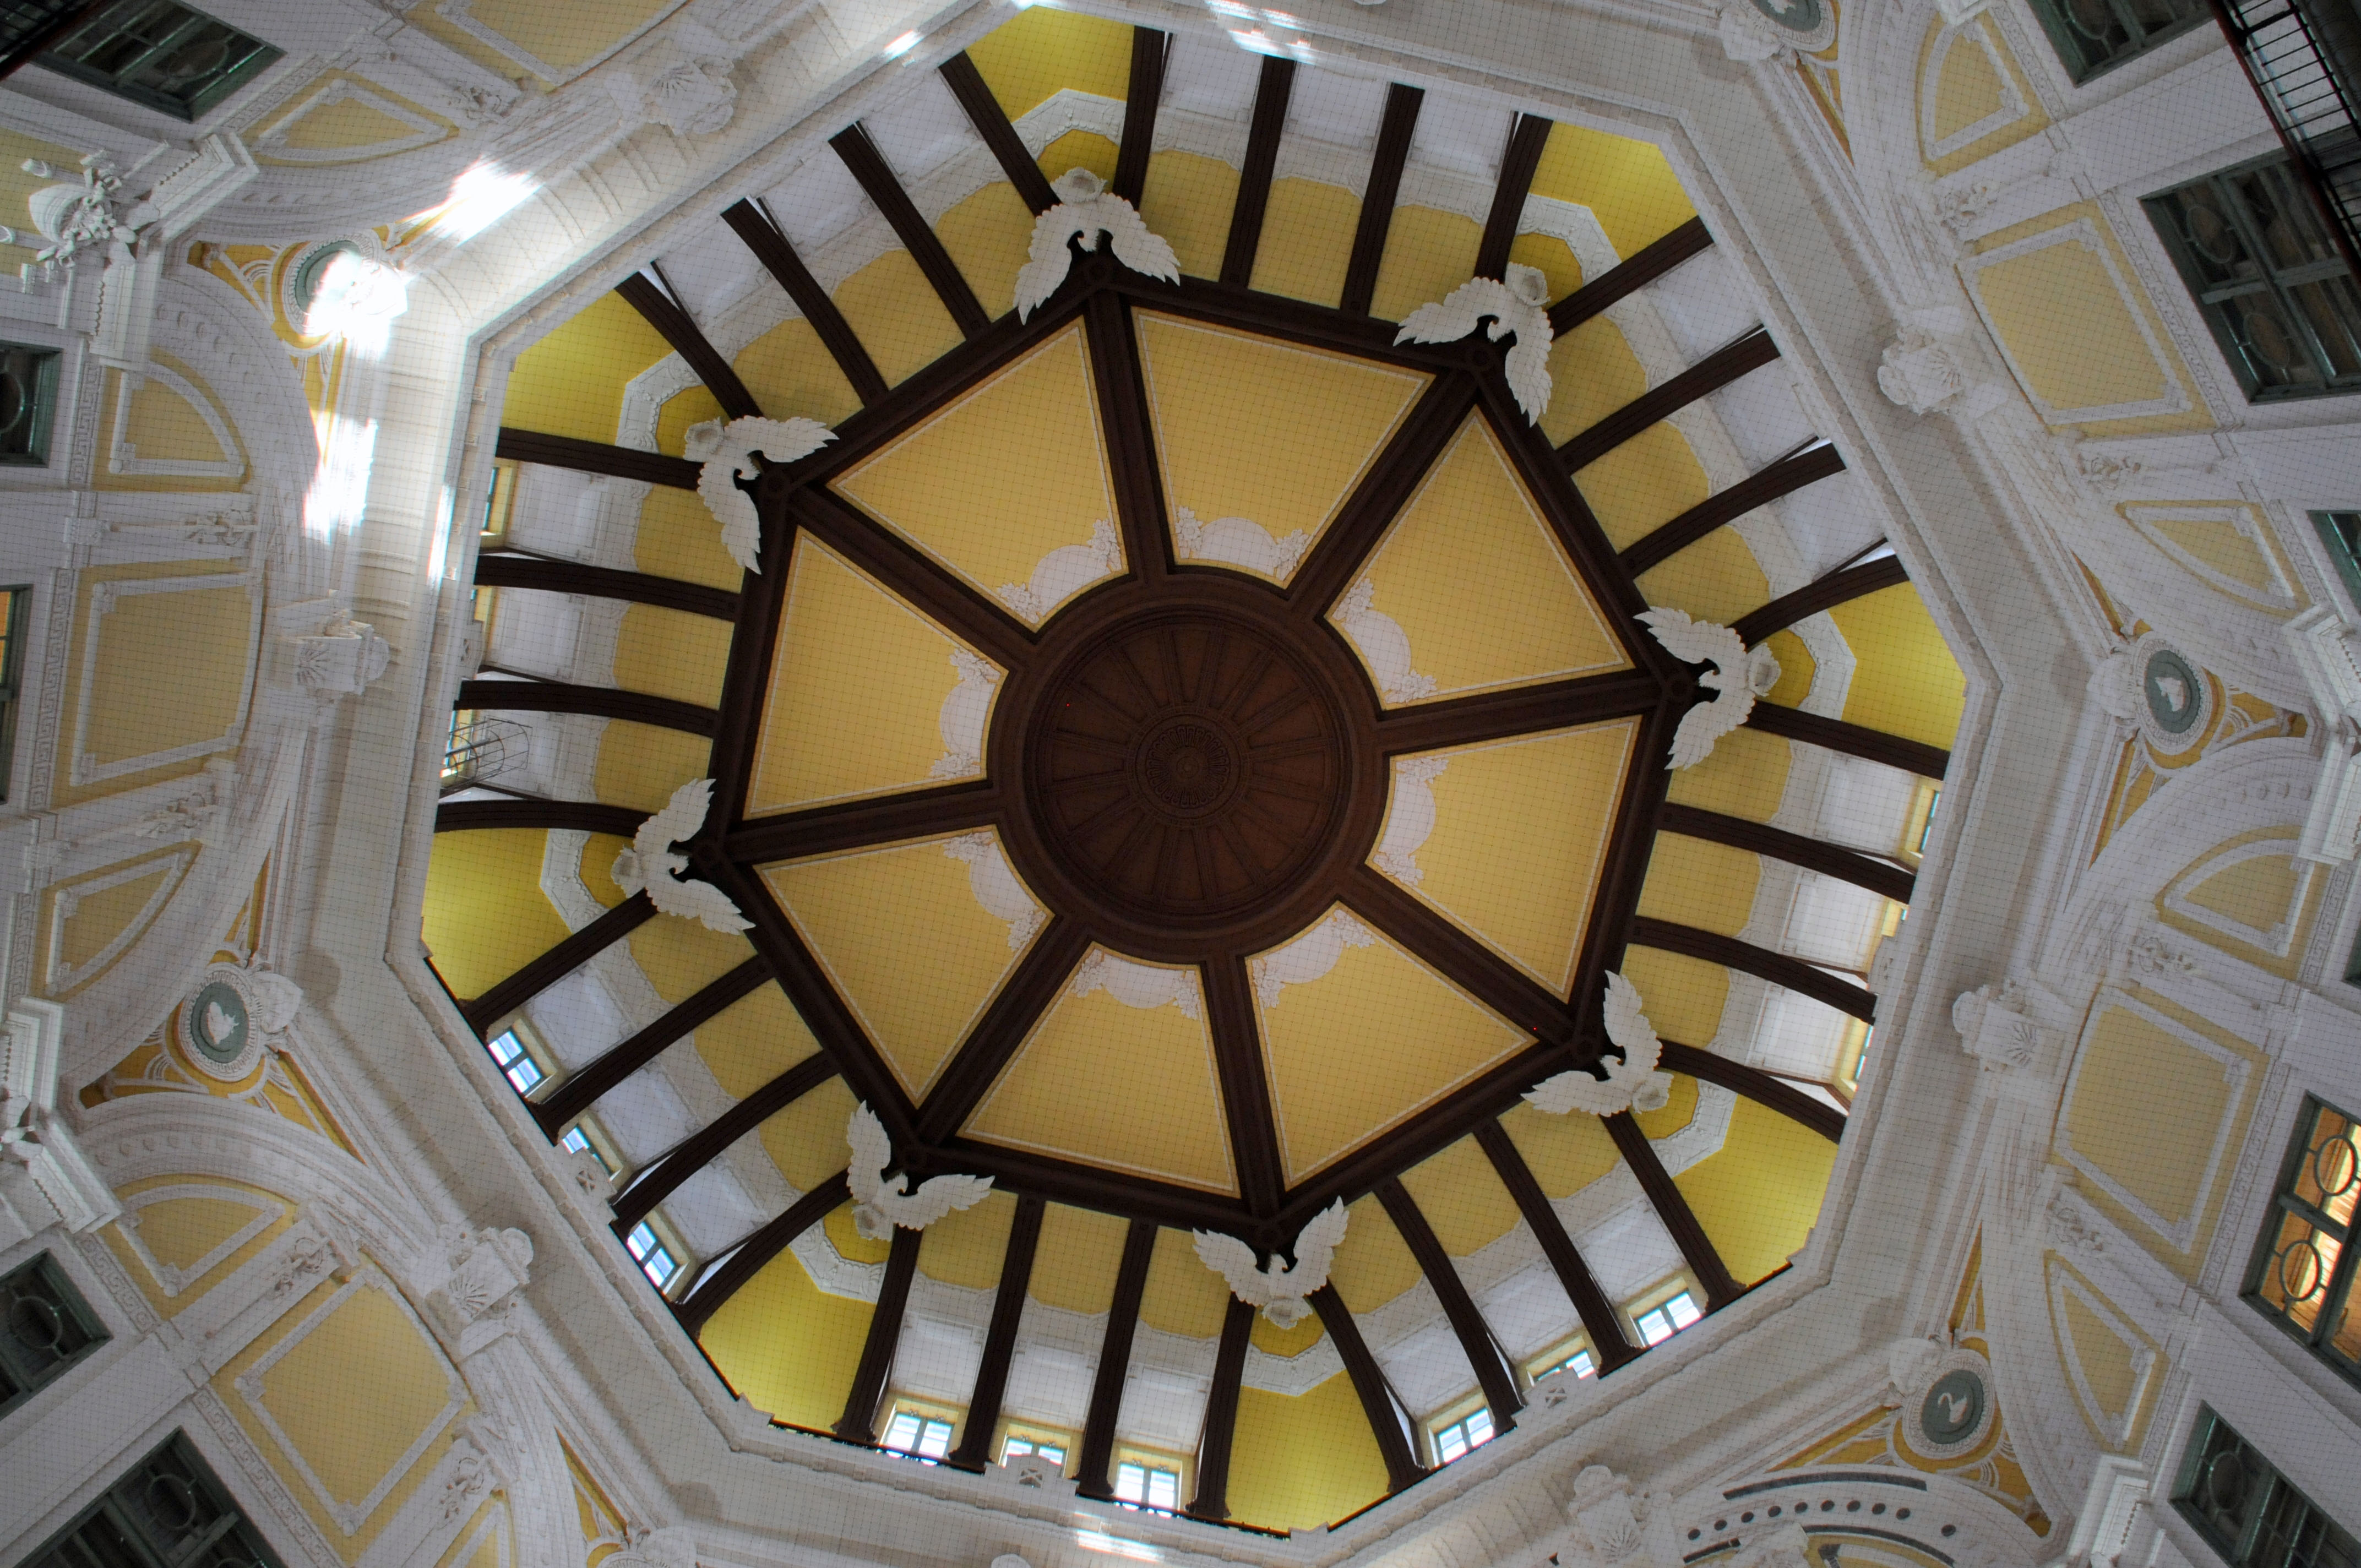 The interiors of the domes that adorn JR Tokyo Station were recently refurbished.